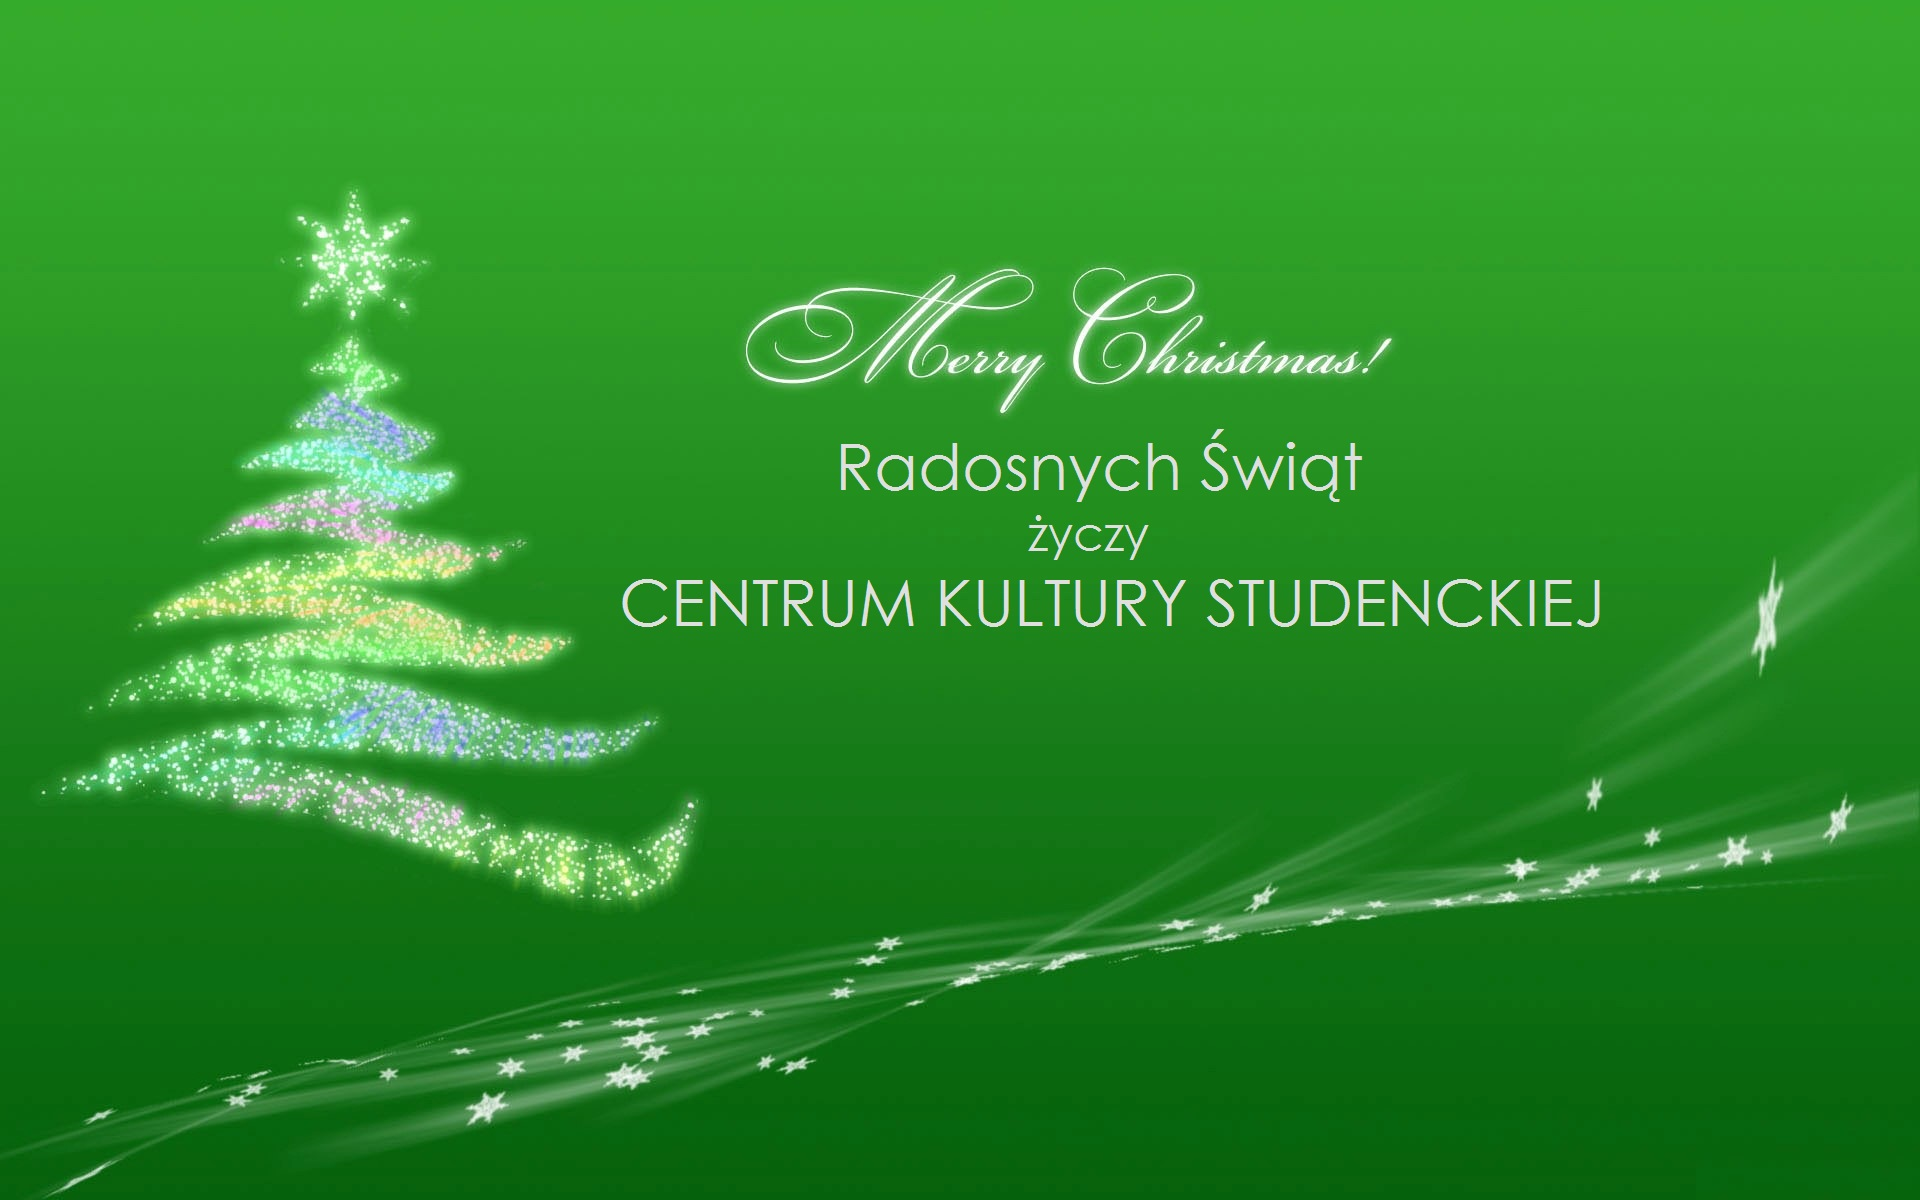 Merry_Christmas_Green_Wallpaper_on_Christmas_Holiday_Free_Download,